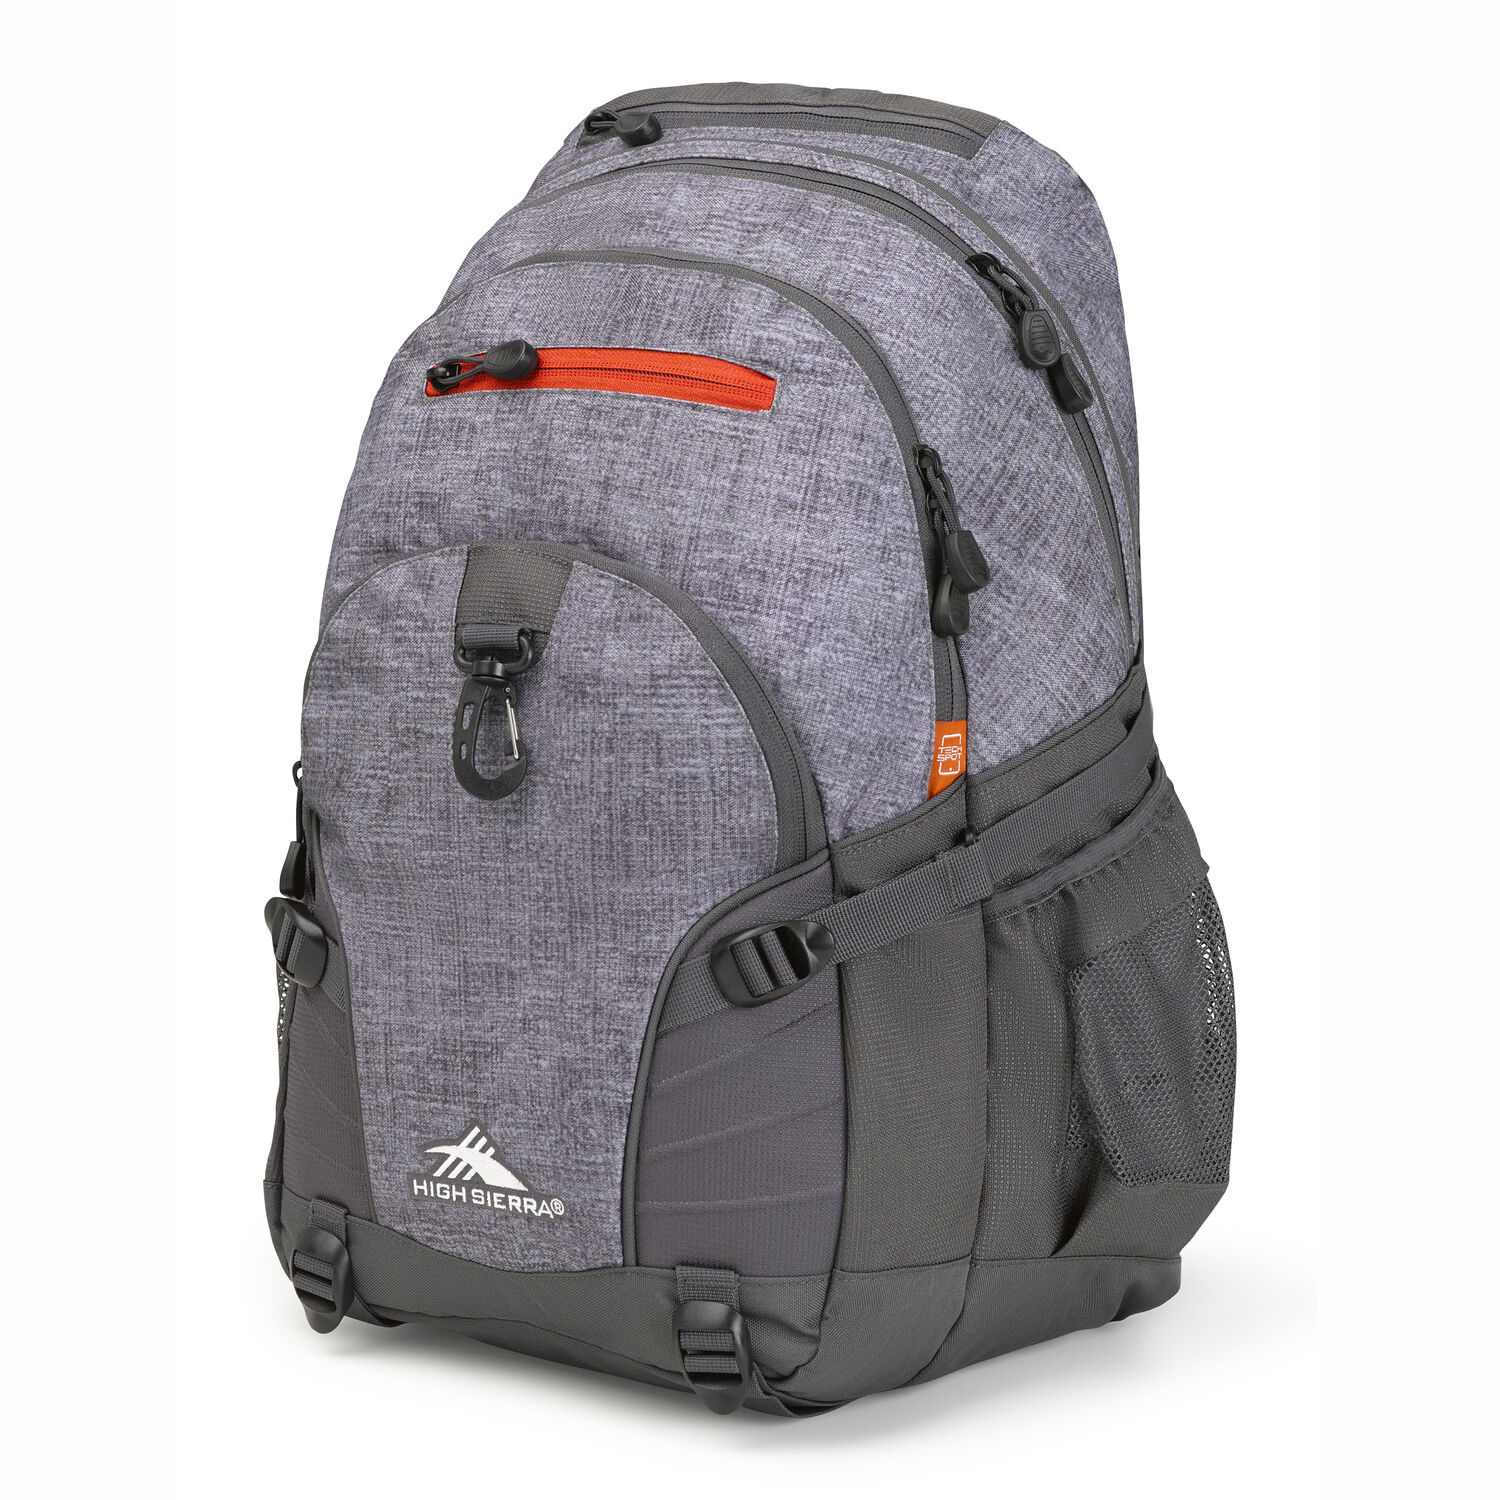 4452aa740989 High Sierra Loop Backpack in the color Woolly Weave Mercury Crimson.